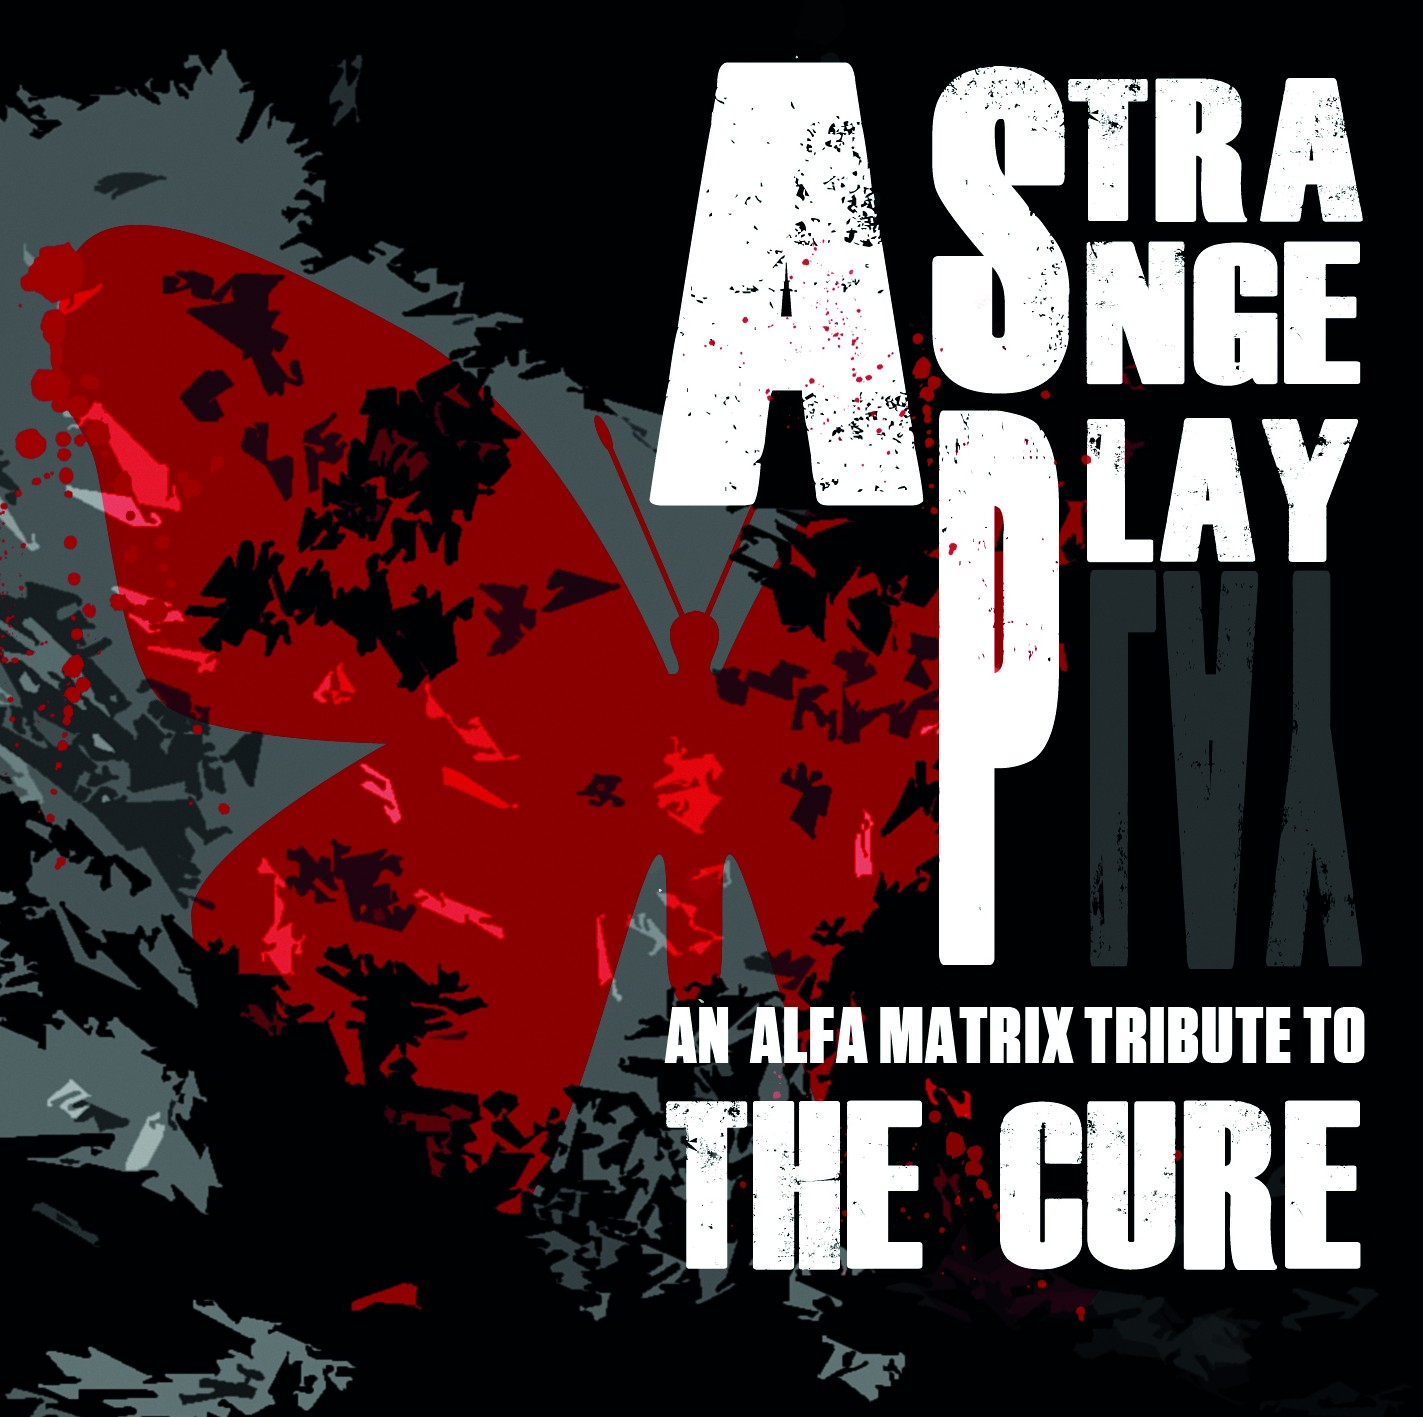 V.A. - A Strange Play - An Alfa Matrix Tribute to THE CURE - 2CD